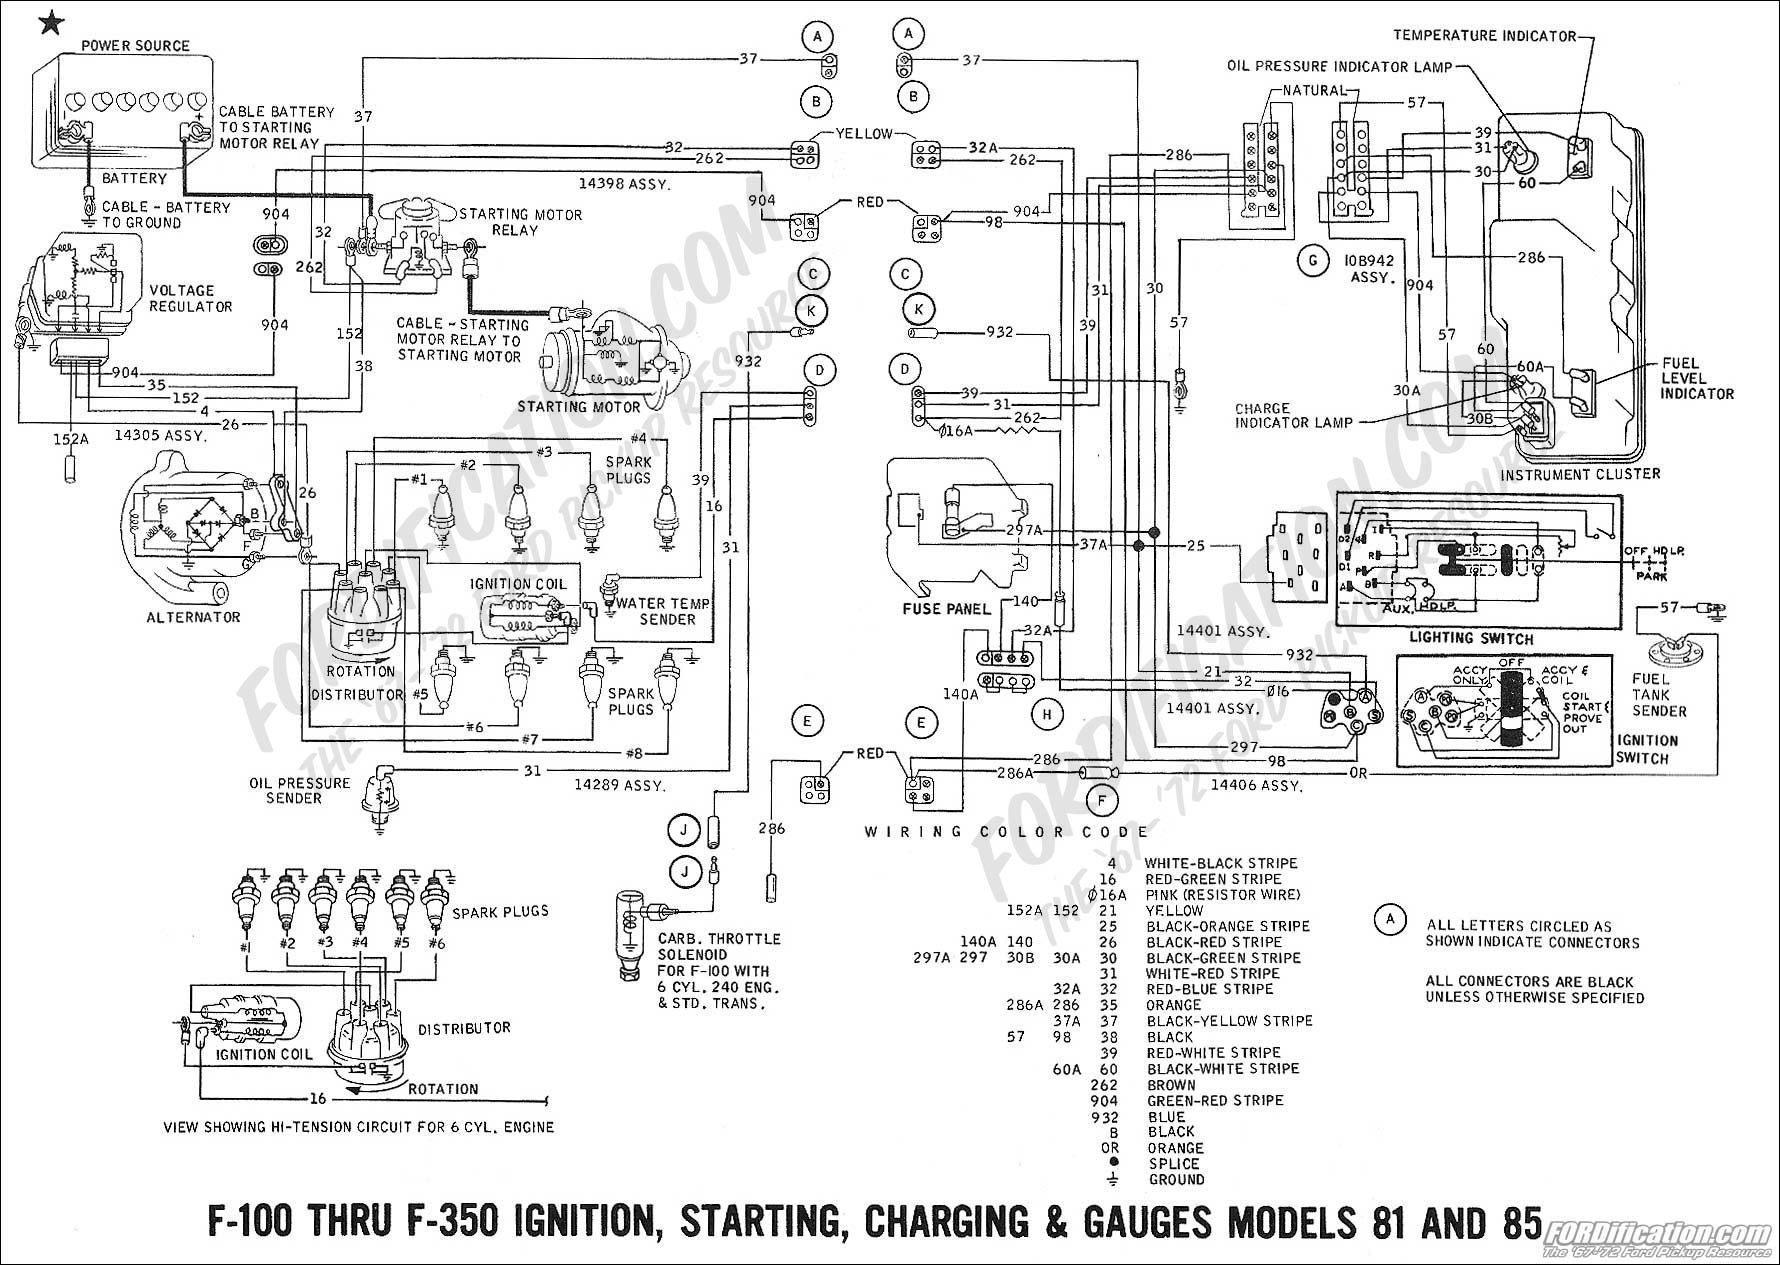 hight resolution of 1969 ford alternator wiring wiring diagram electricity basics 101 u2022 rh casamagdalena us 1990 ford alternator